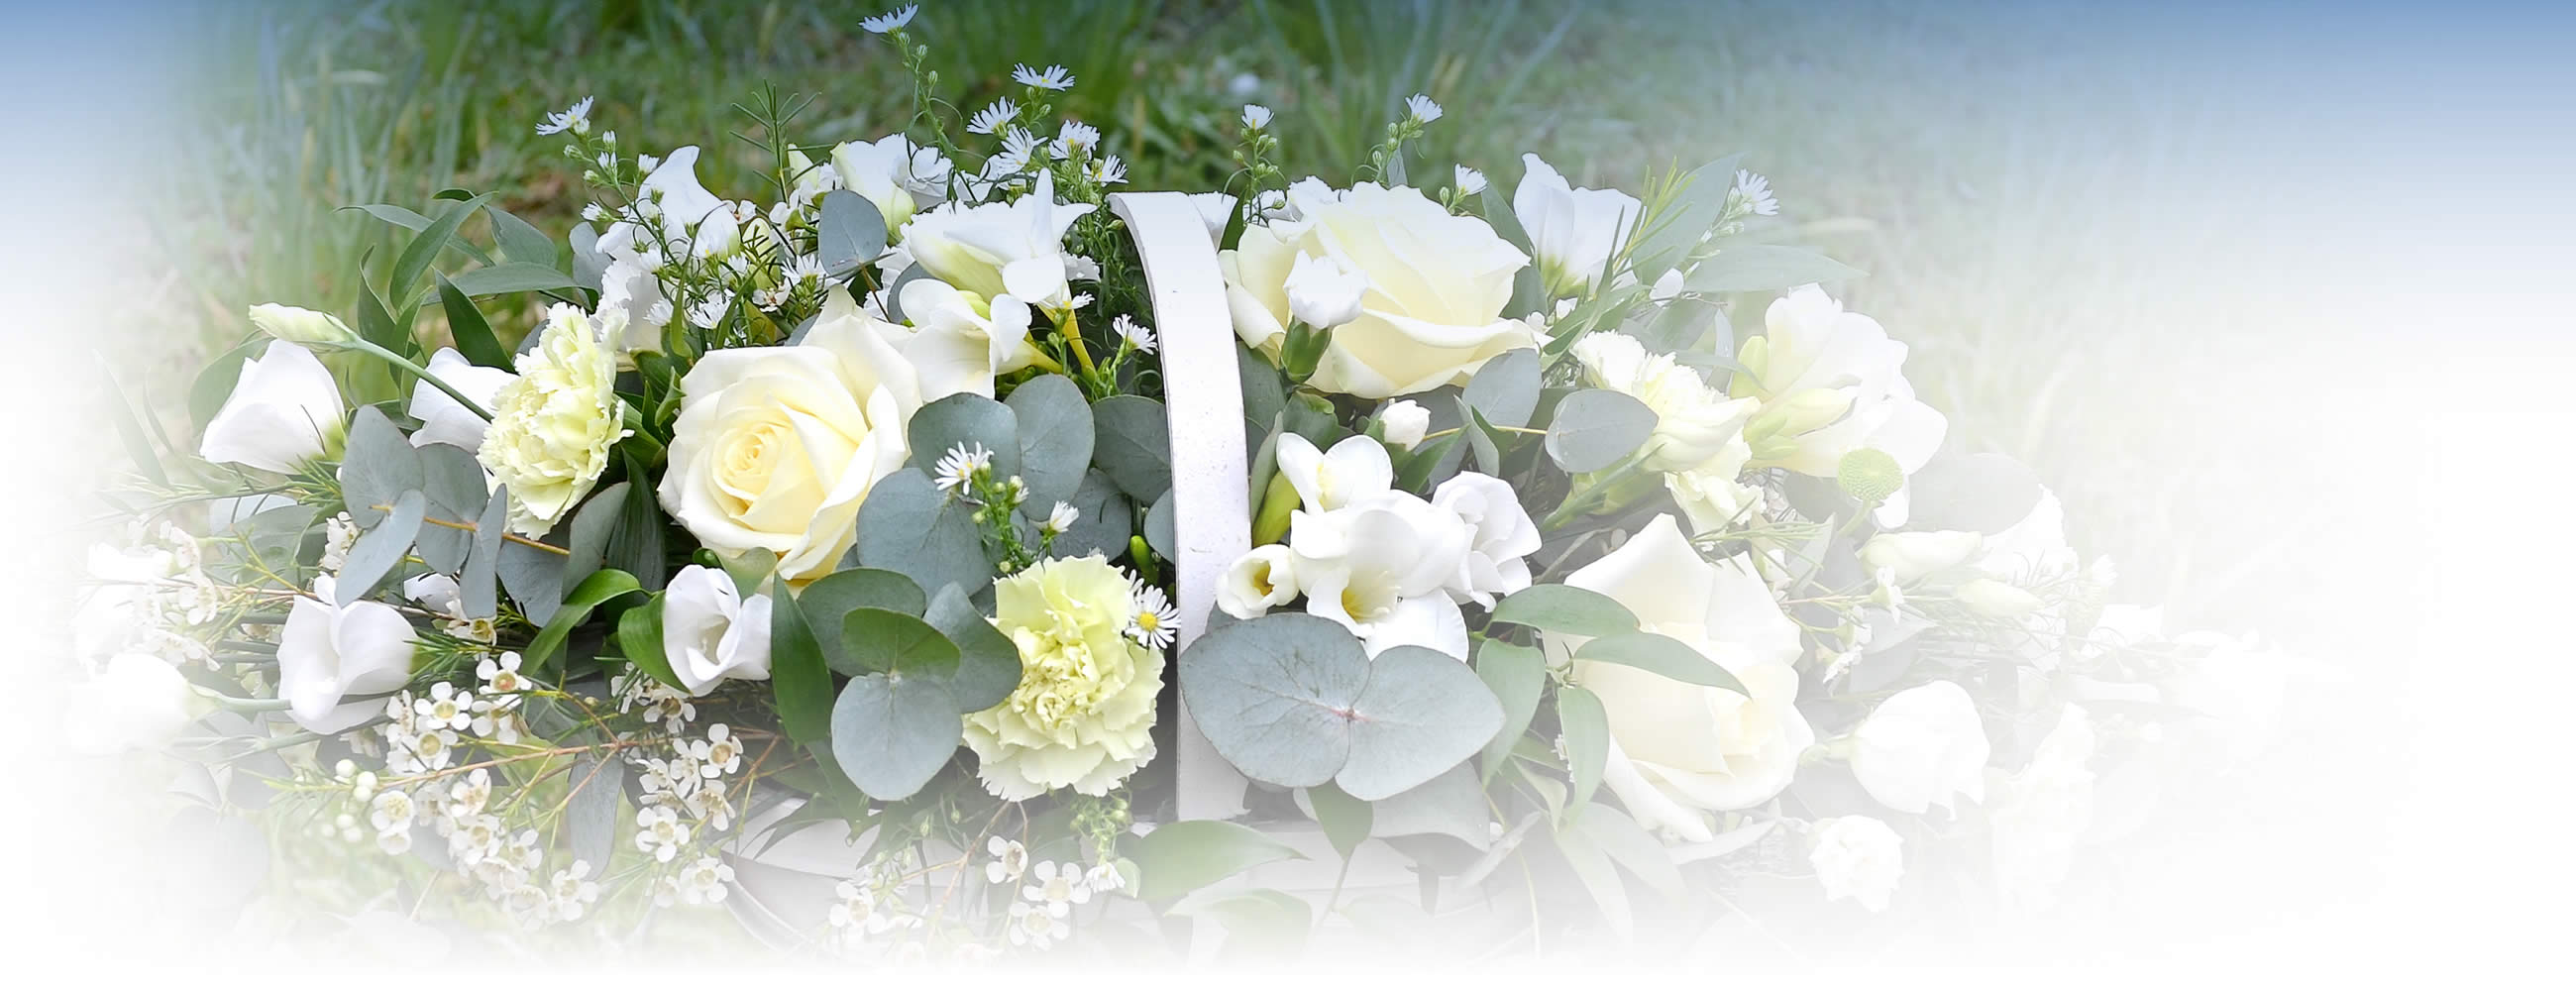 The Harwood Park flower court